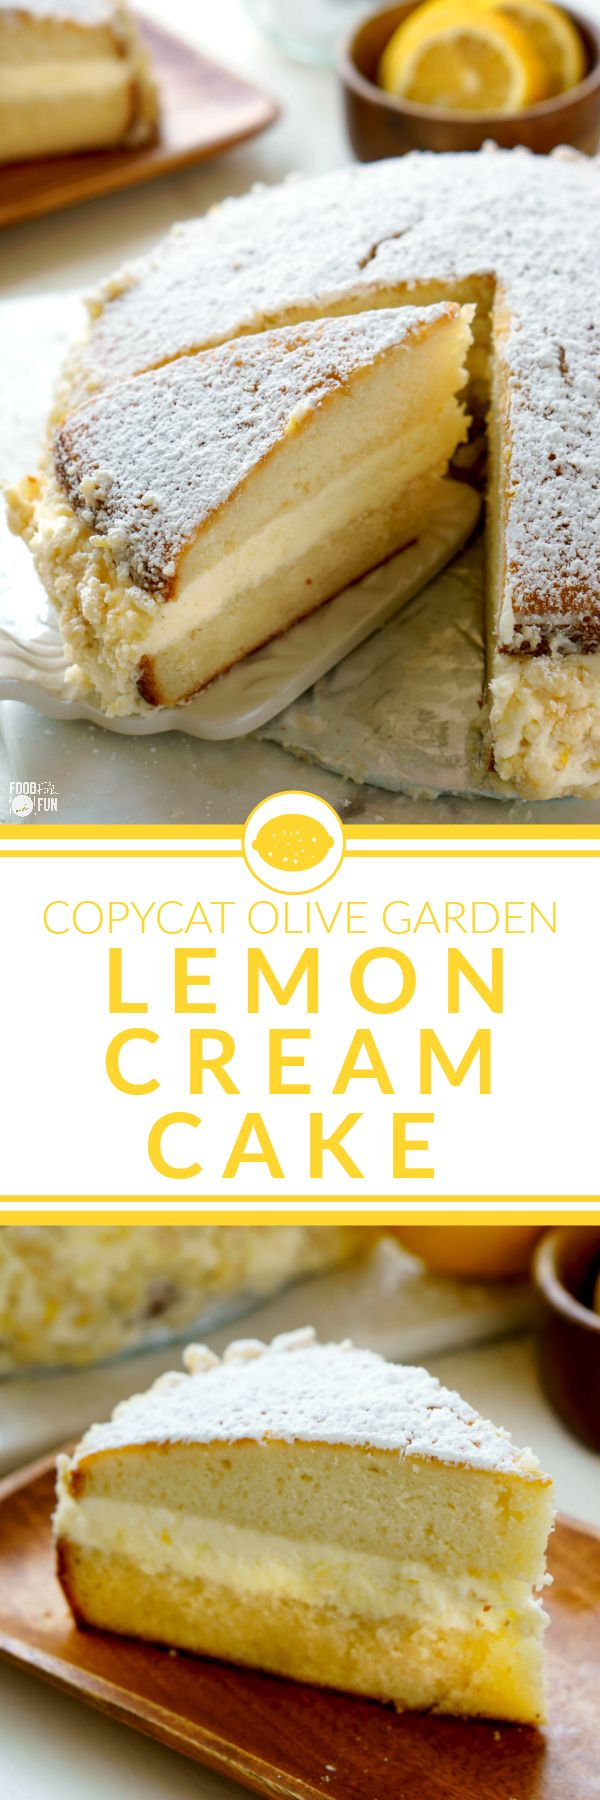 This Copycat Olive Garden Lemon Cream Cake Is Completely Homemade And Is Every Bit As Good As